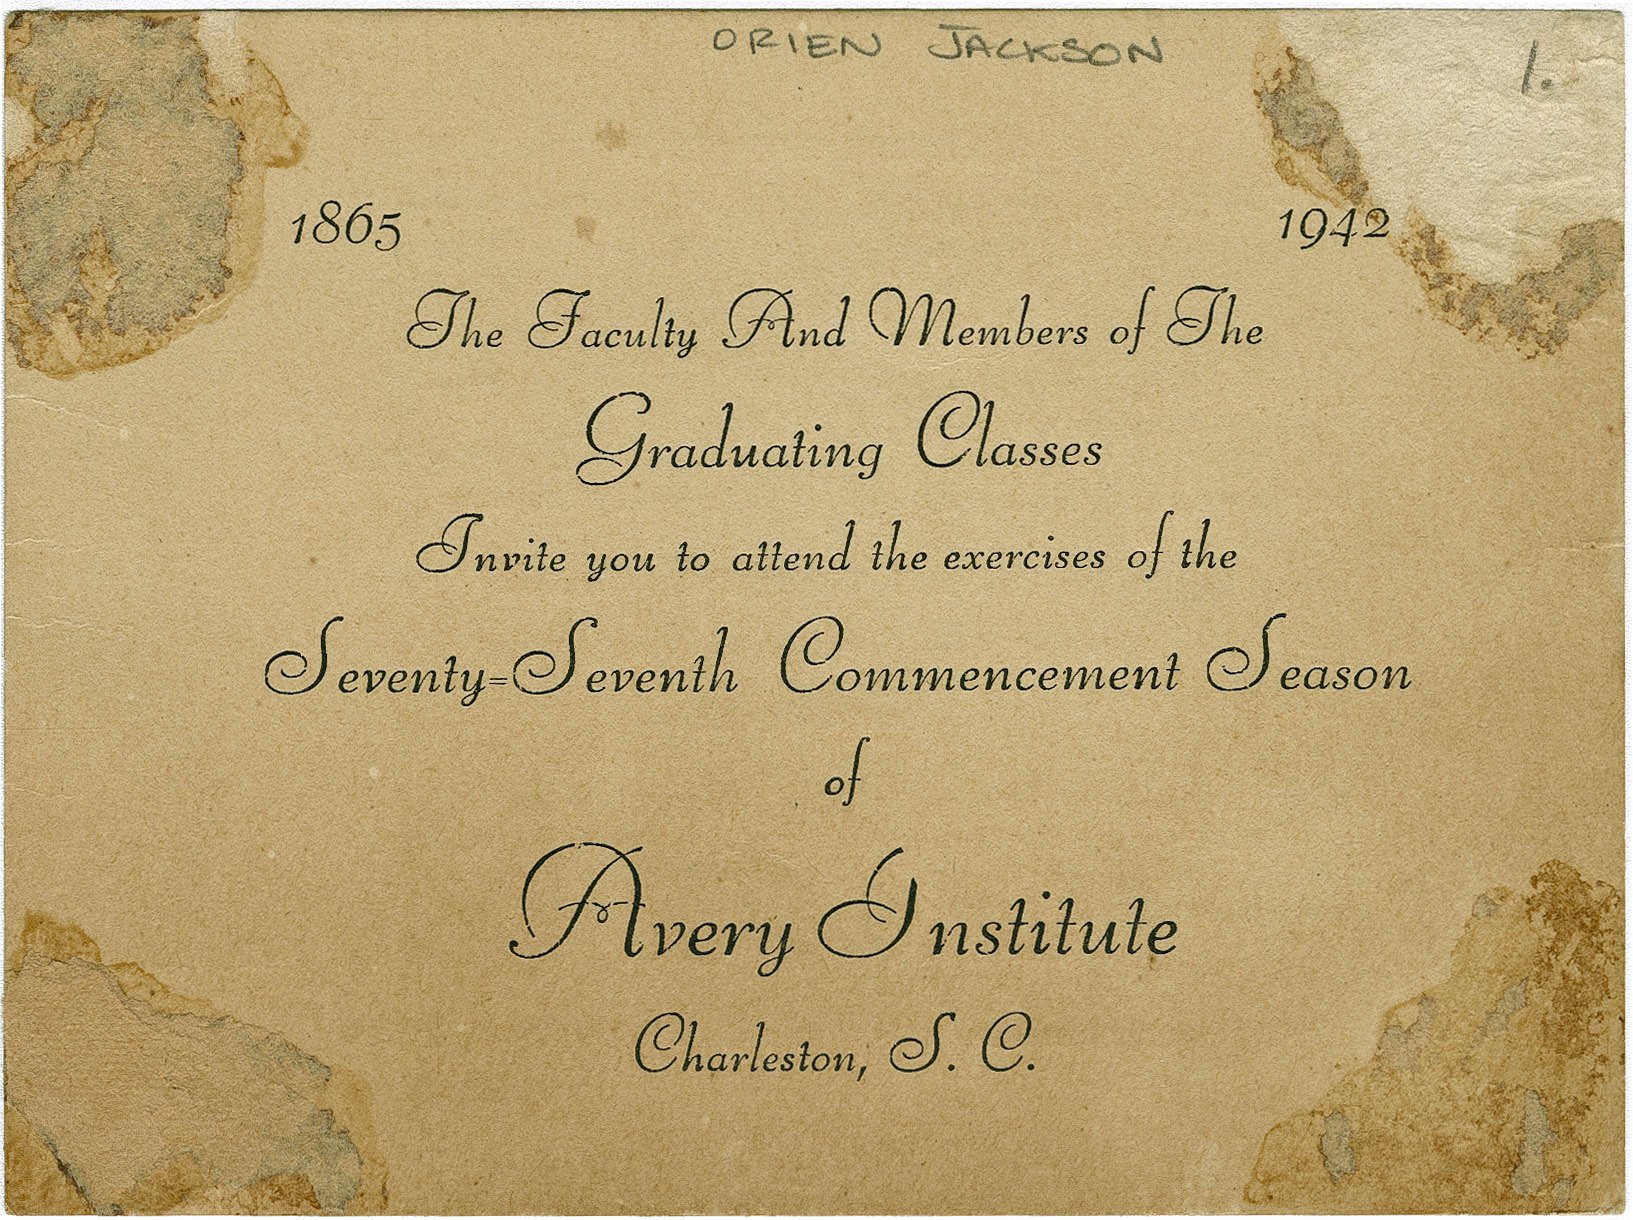 Invitation to Avery Normal Institute Commencement Exercises